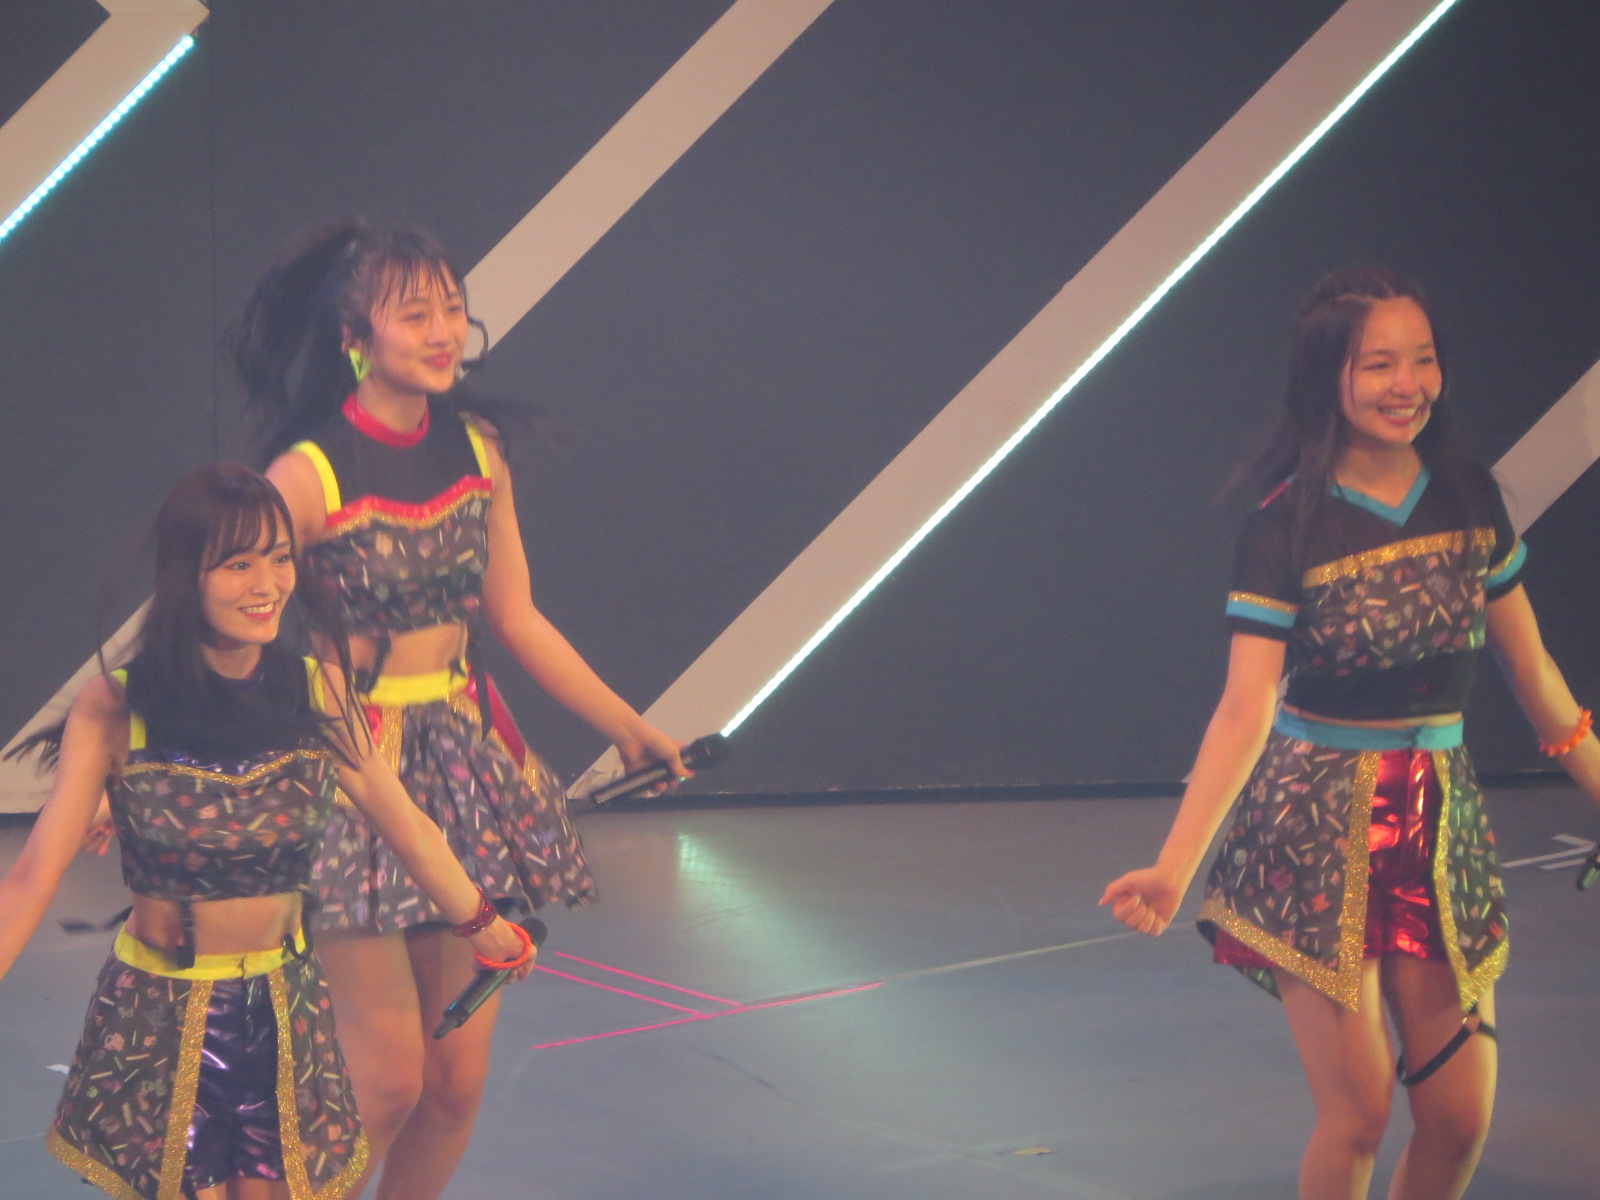 NMB48 LIVE TOUR 2018 in Summer・石川公演の画像-085